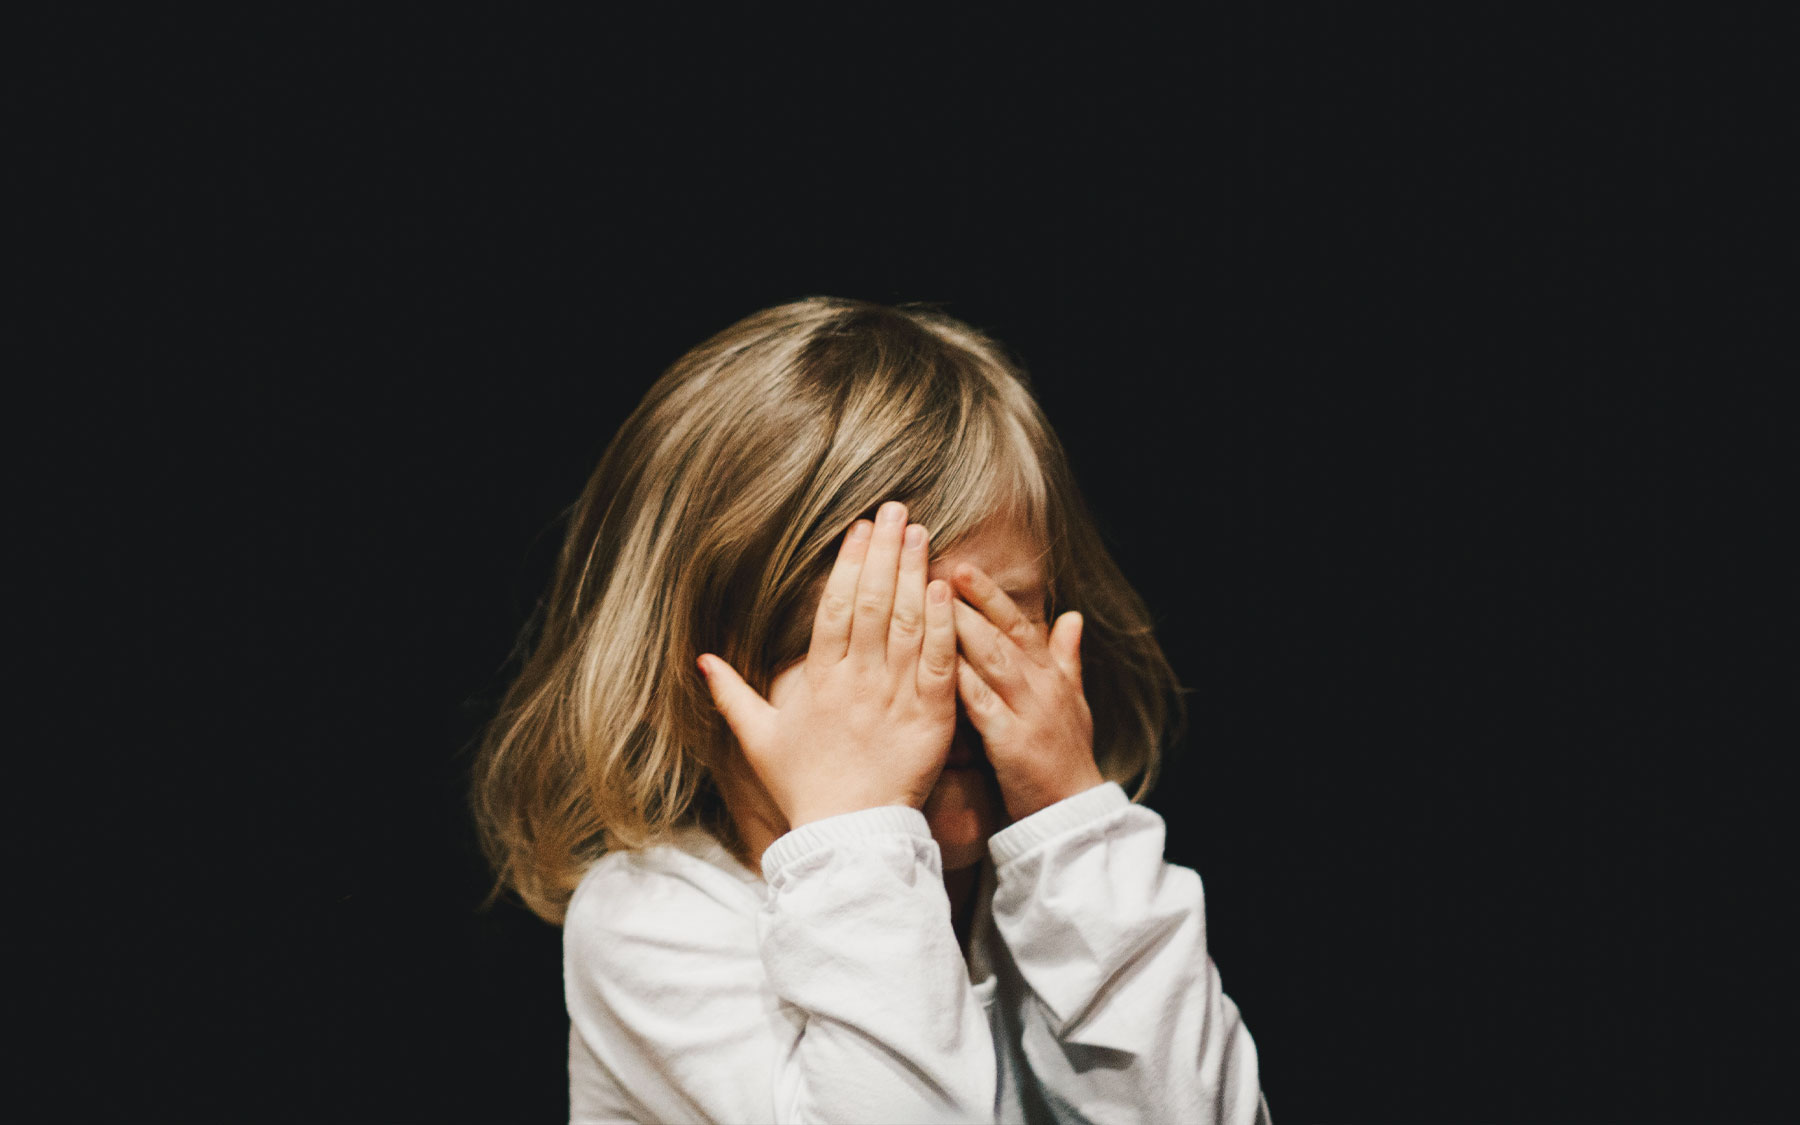 A little girl covering her eyes